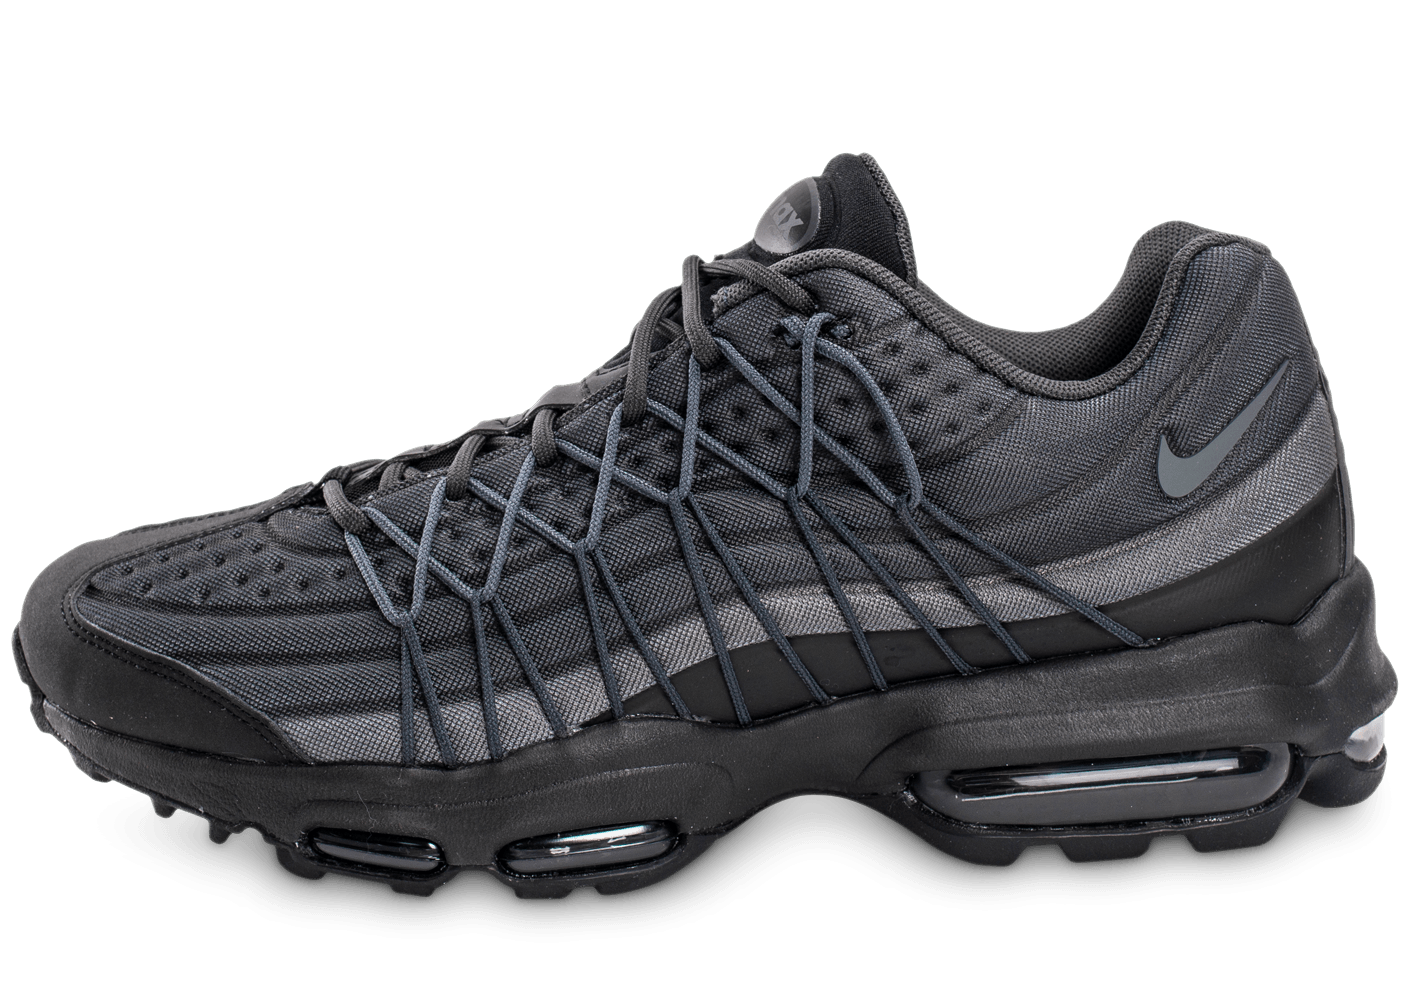 info for 7a1cf a5069 Nike Air Max 95 Ultra SE noire et grise